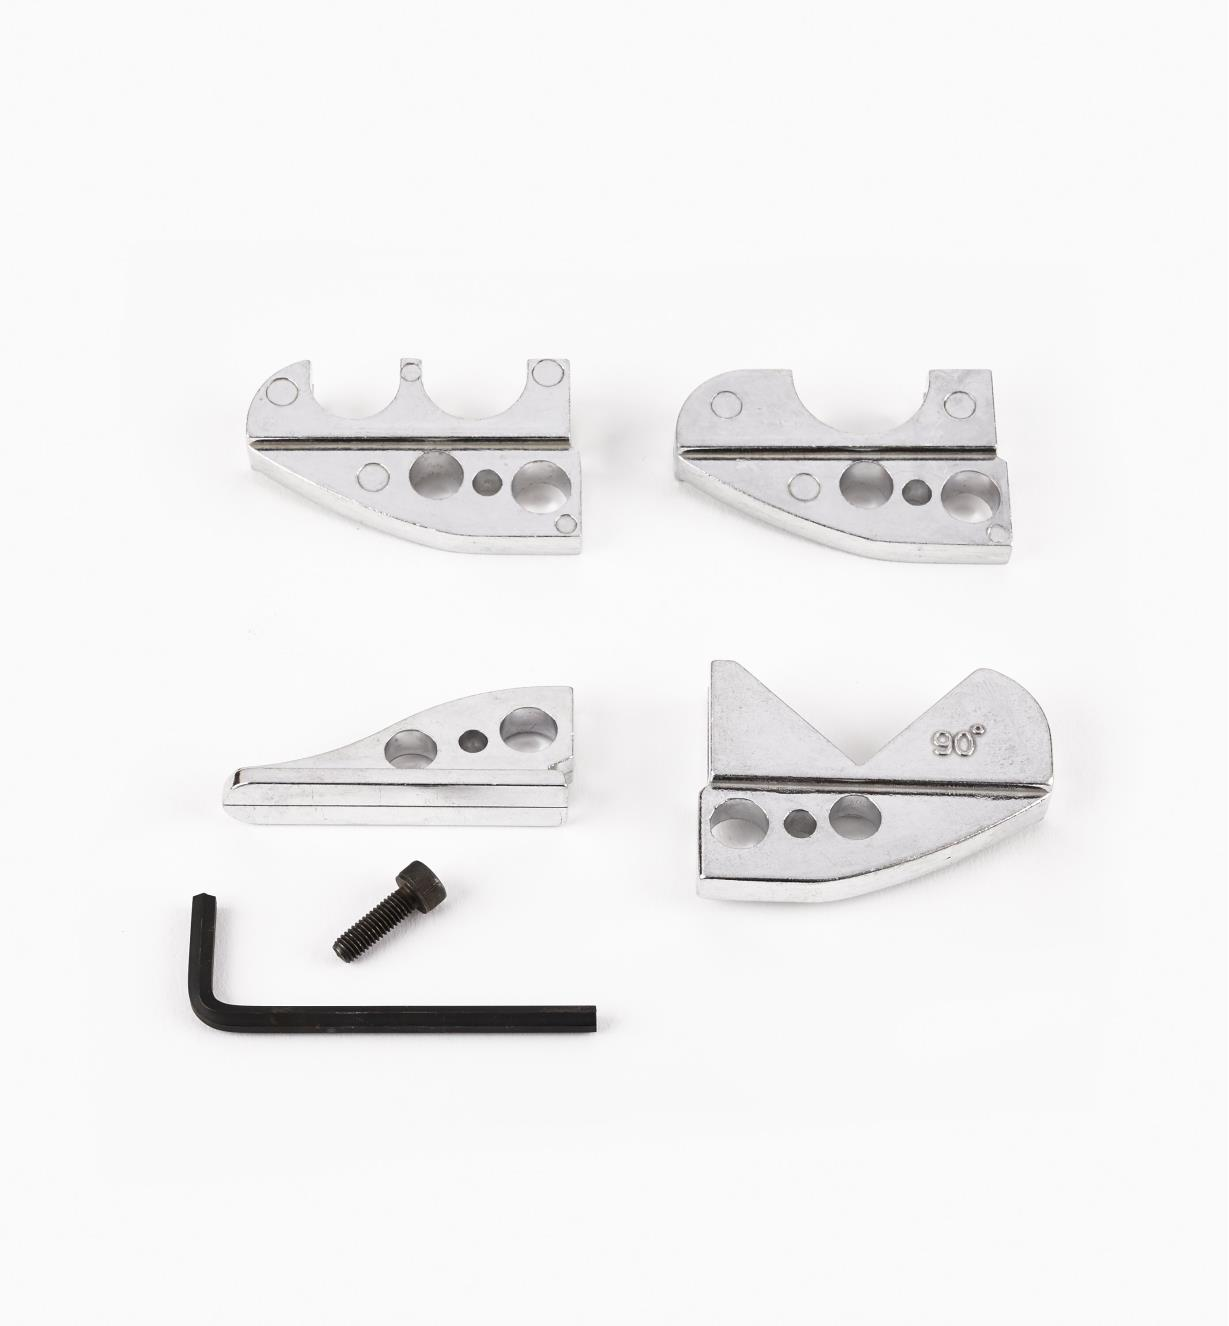 25k0920 - Optional Four-Jaw Set